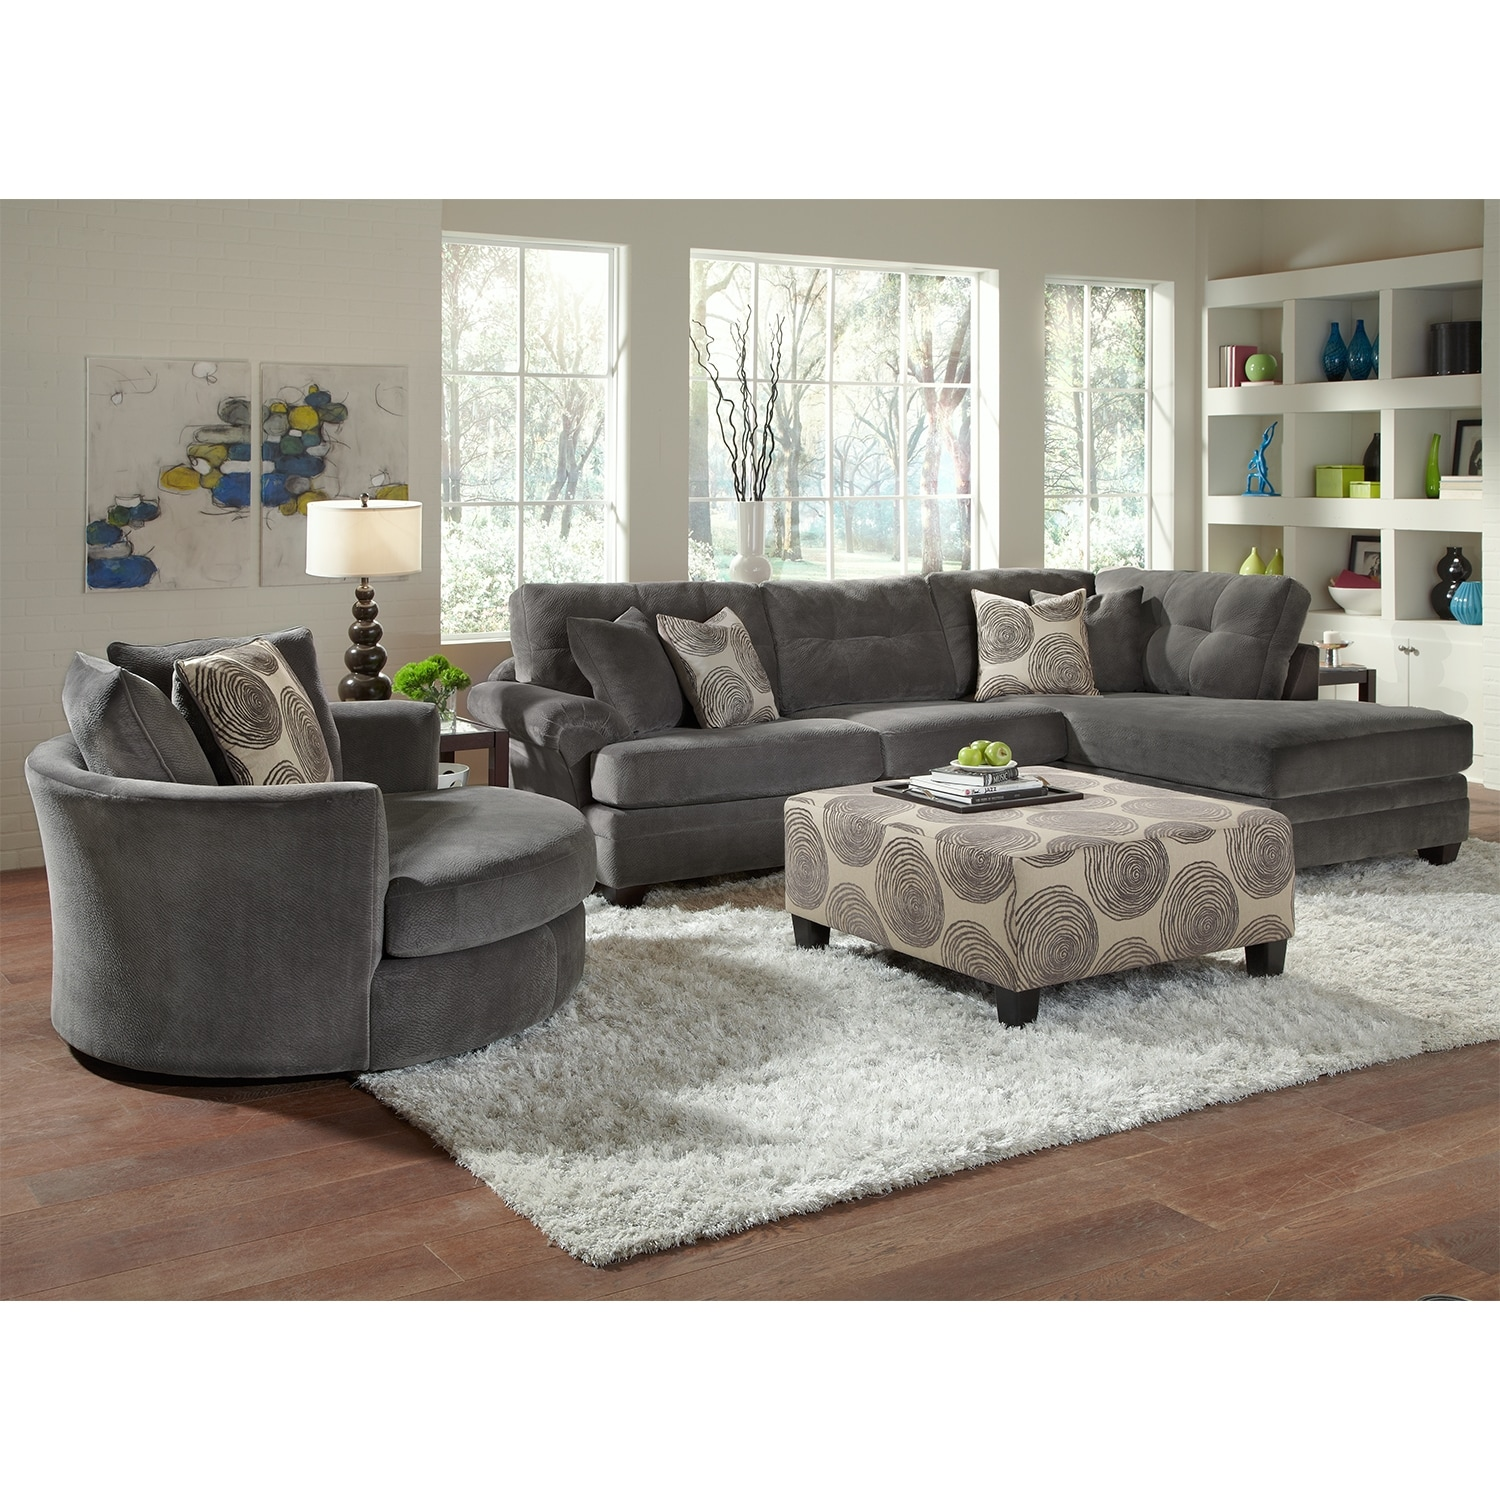 Coming soon for 2 sofa living room ideas